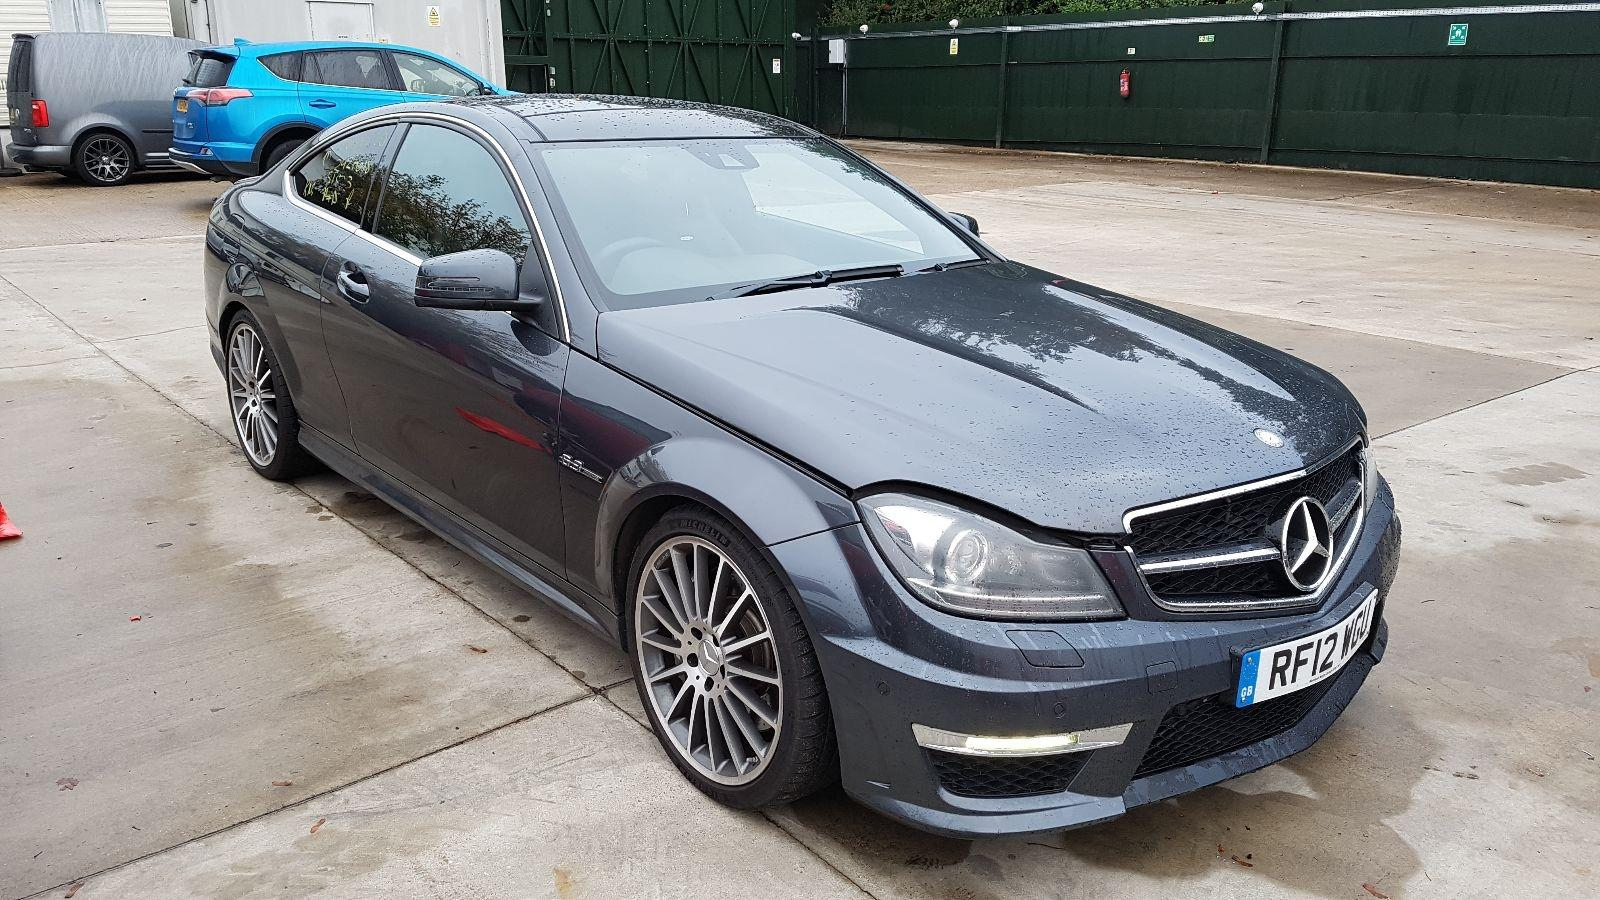 Image for a 2012 Mercedes C Class 6.2 Petrol M156.985 Engine